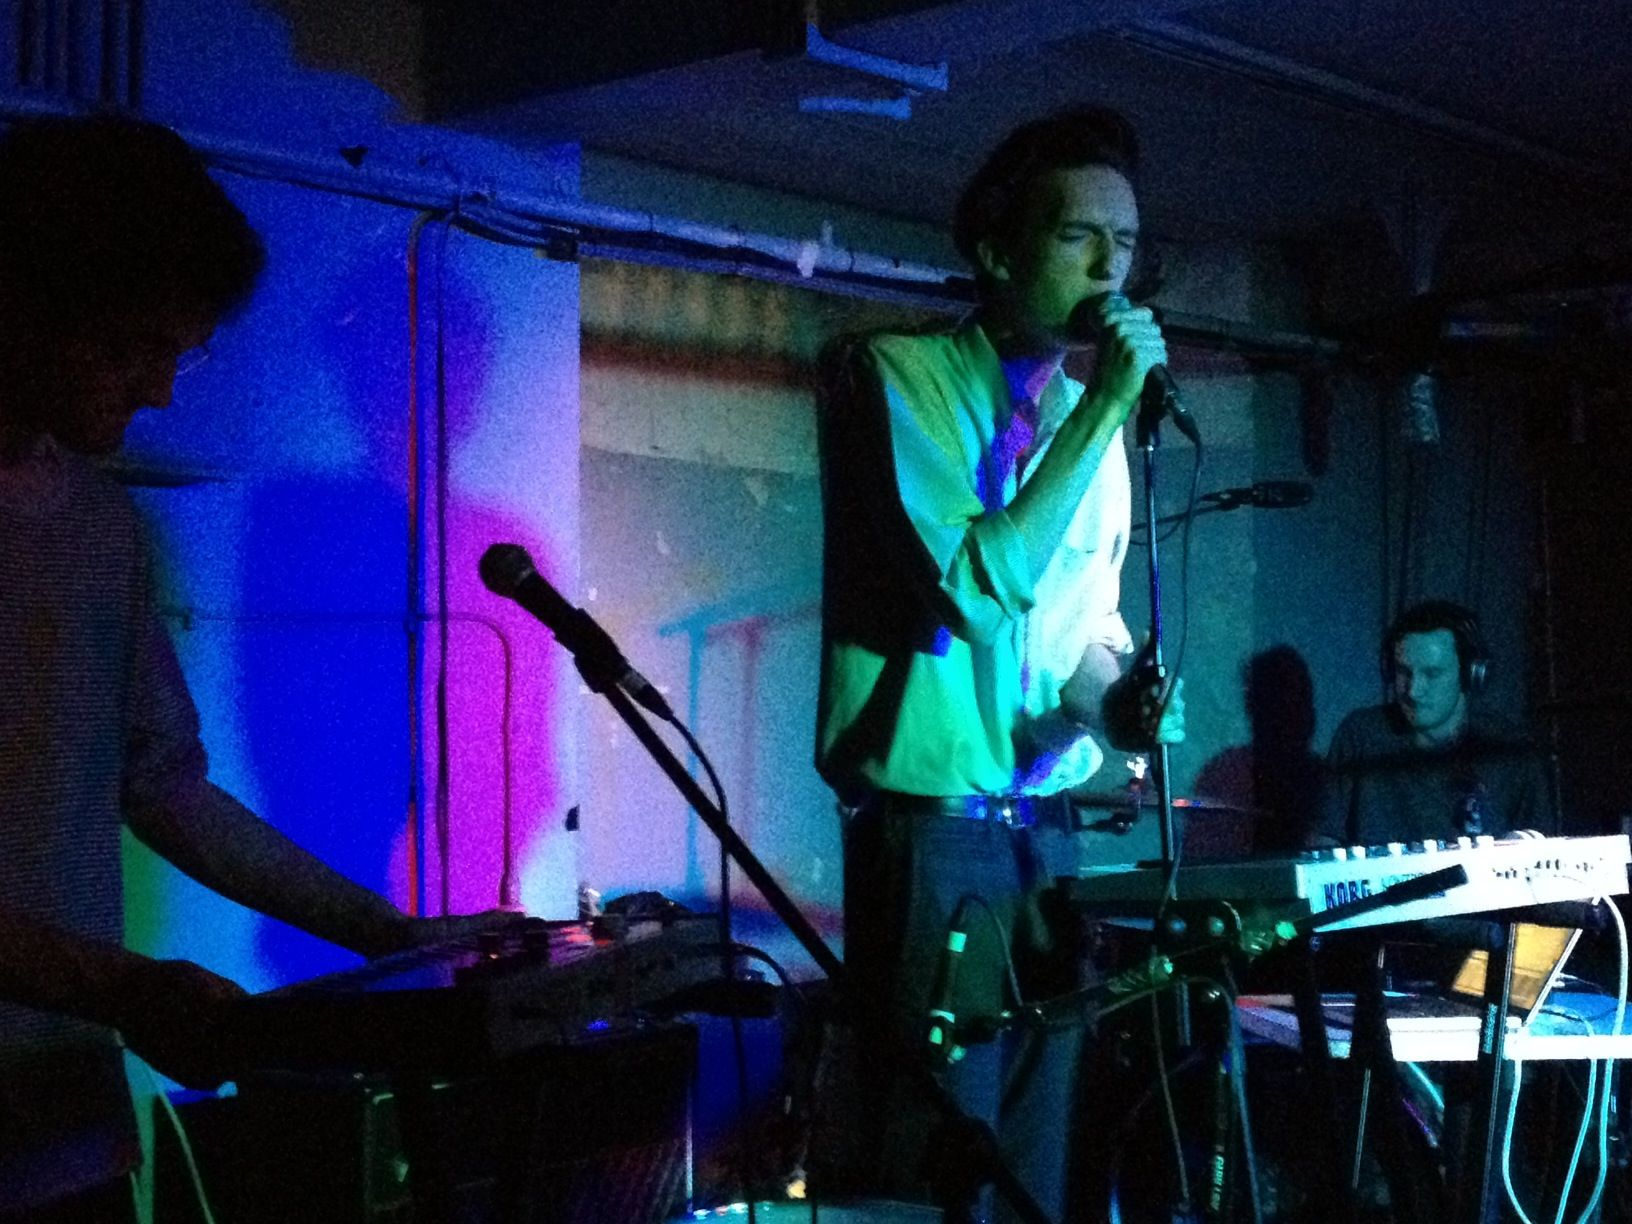 Thanks to everyone who came down last night... Halls live at Camp 24.05.12